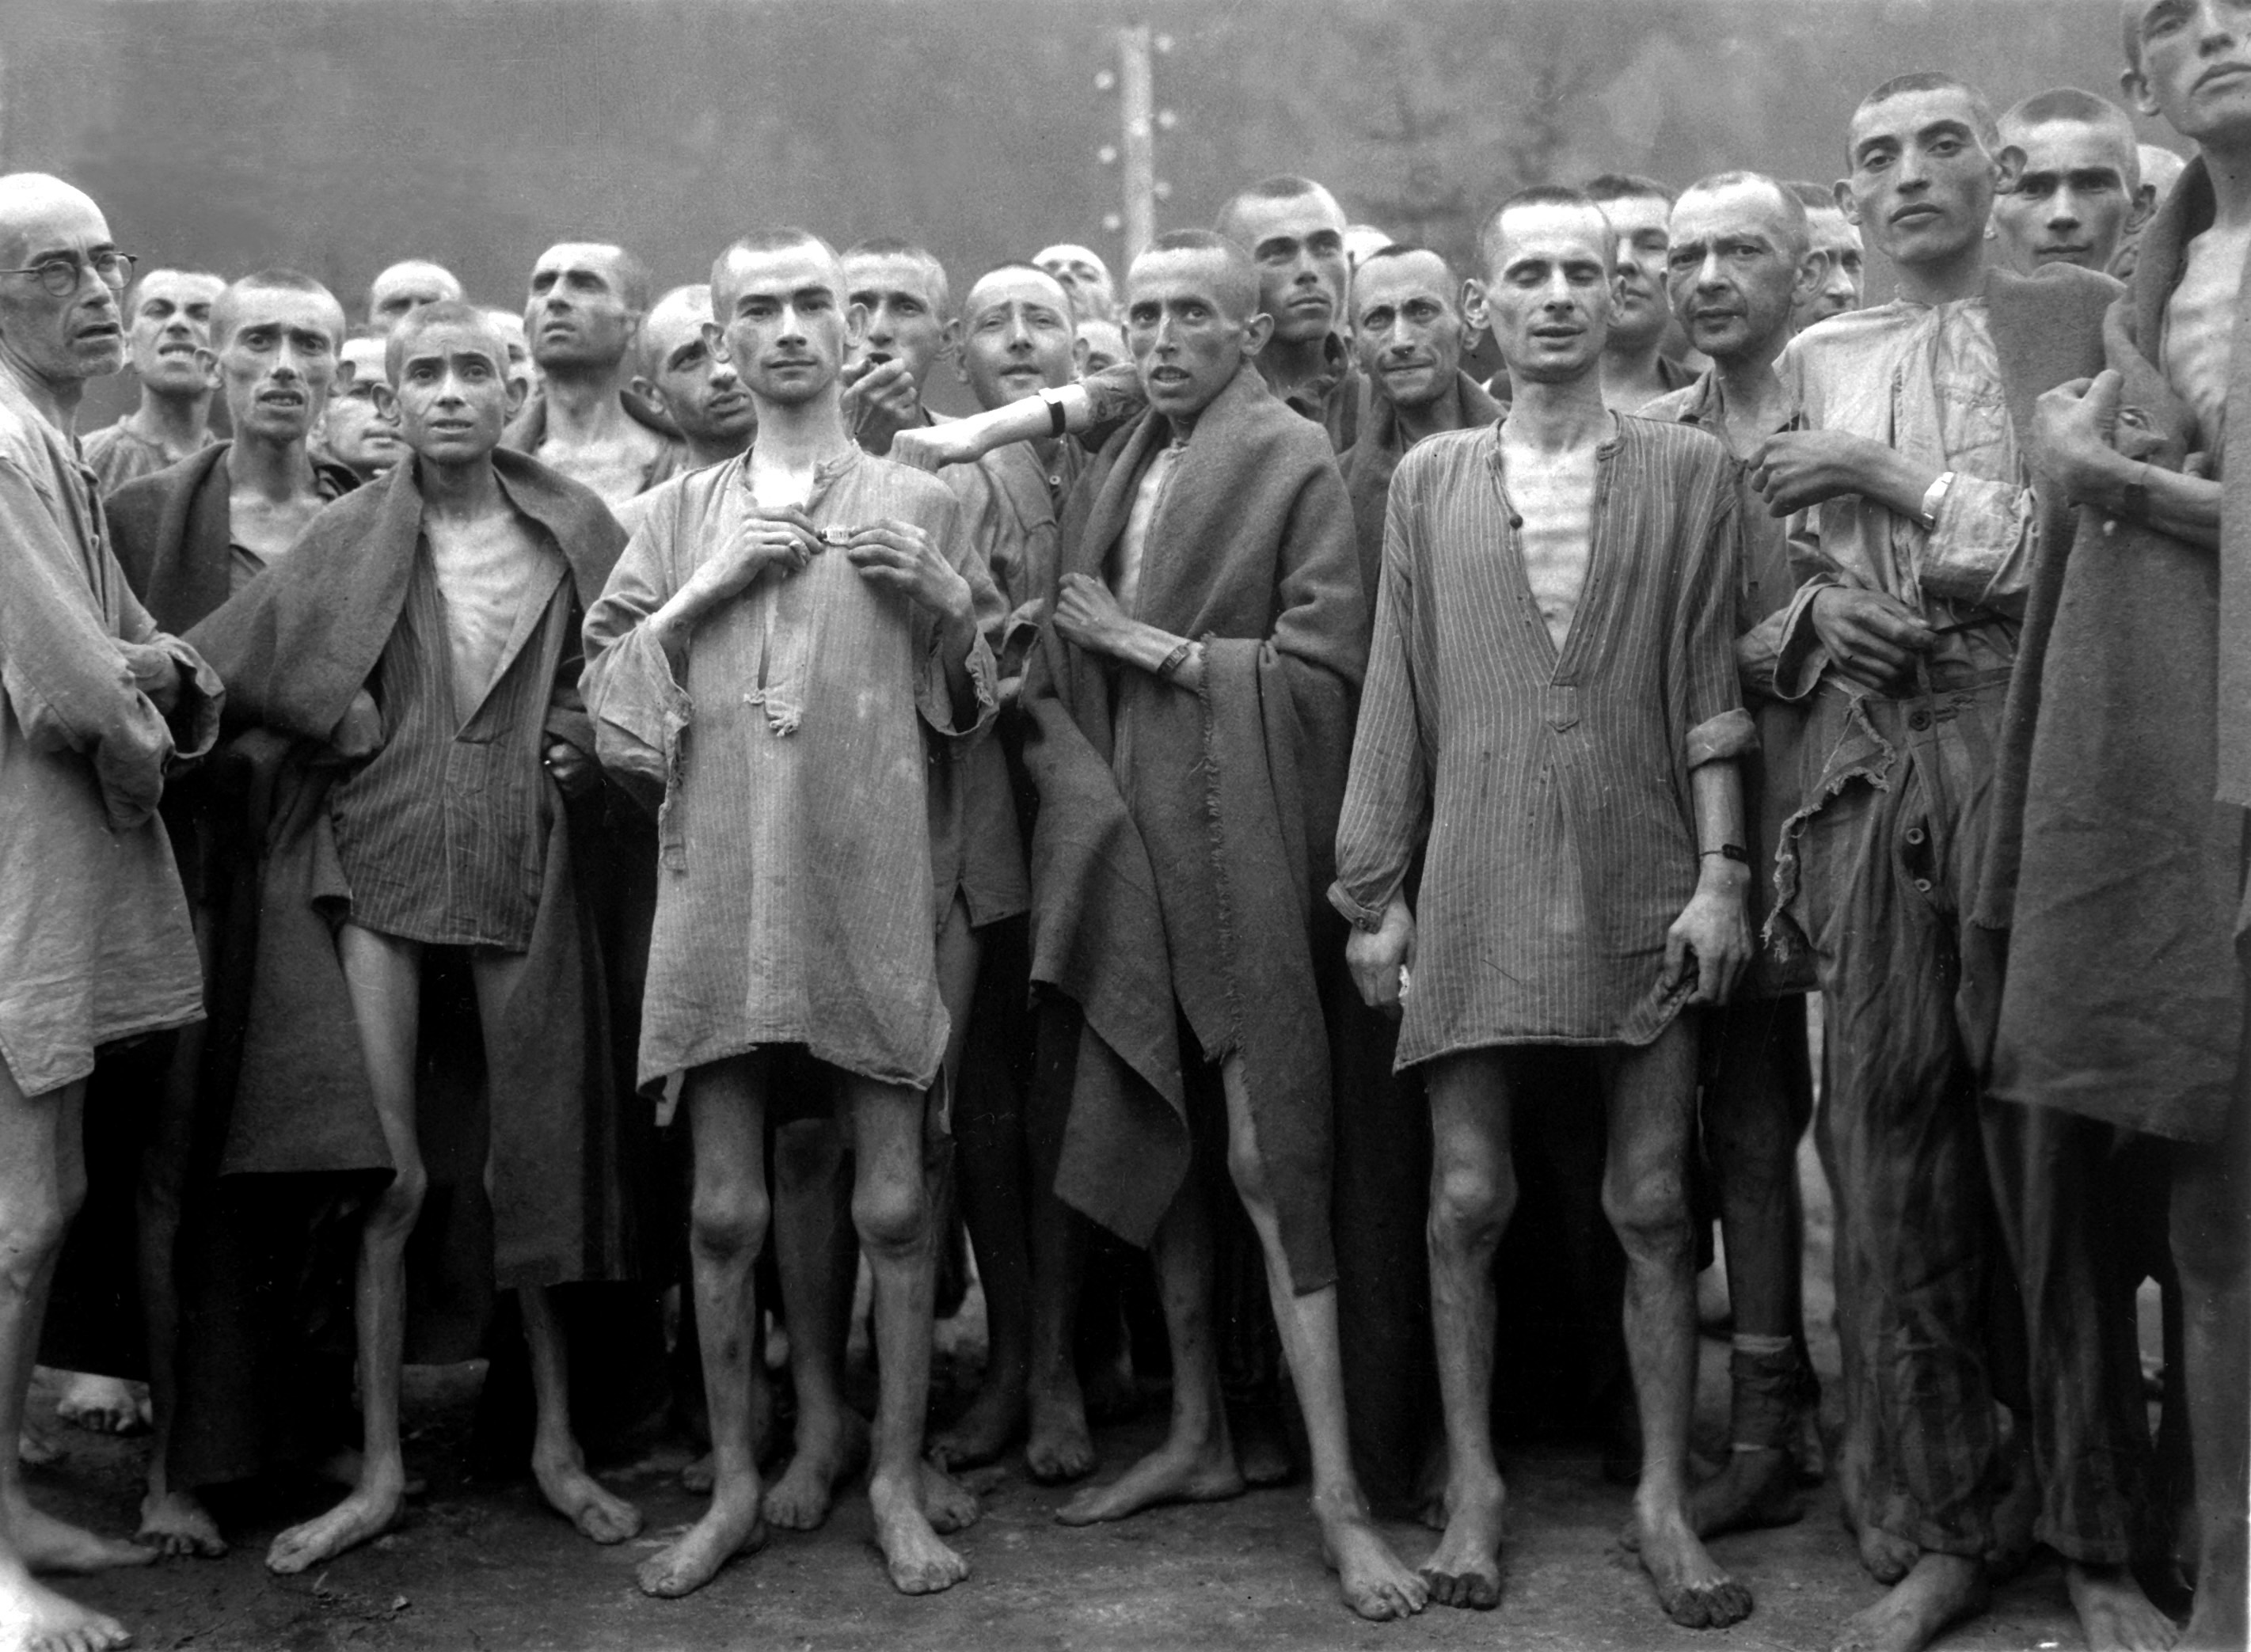 criminals were imprisoned and 5000 were executed from 1945 to 1985.